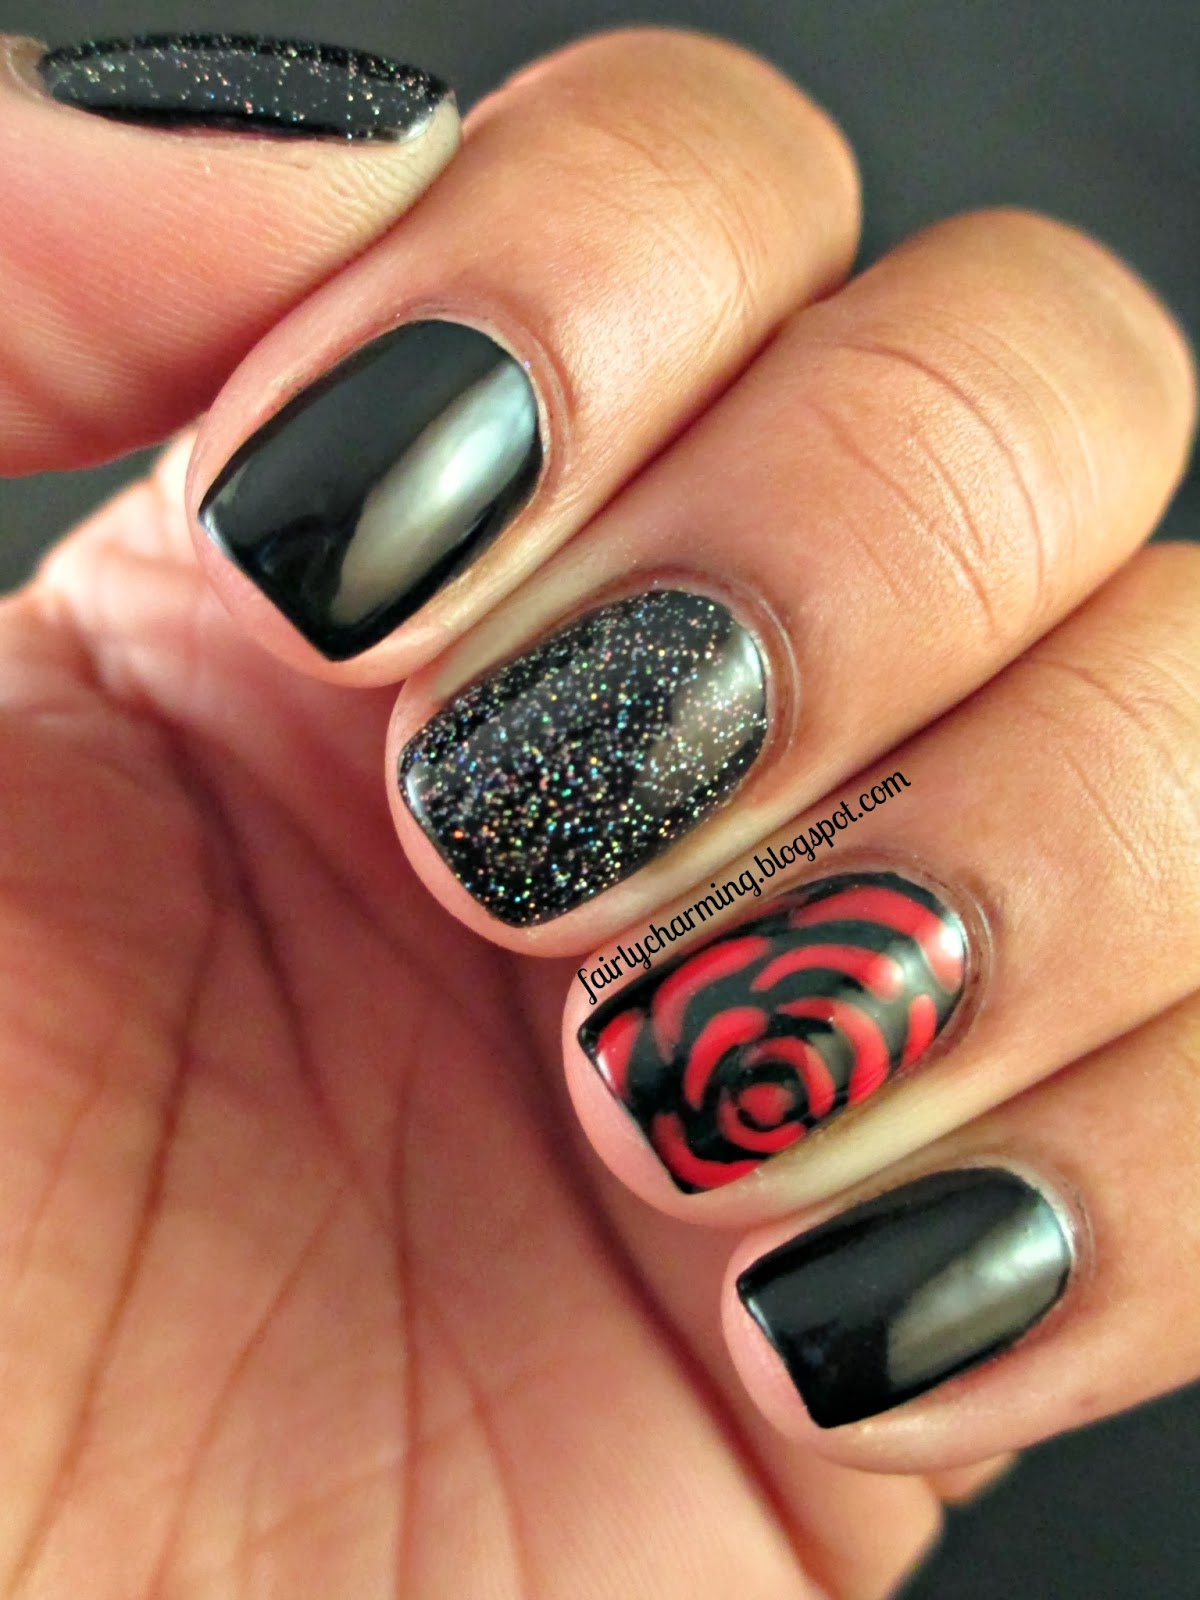 Cute Nail Designs With Red And Black: Cute pink and black nails designs.